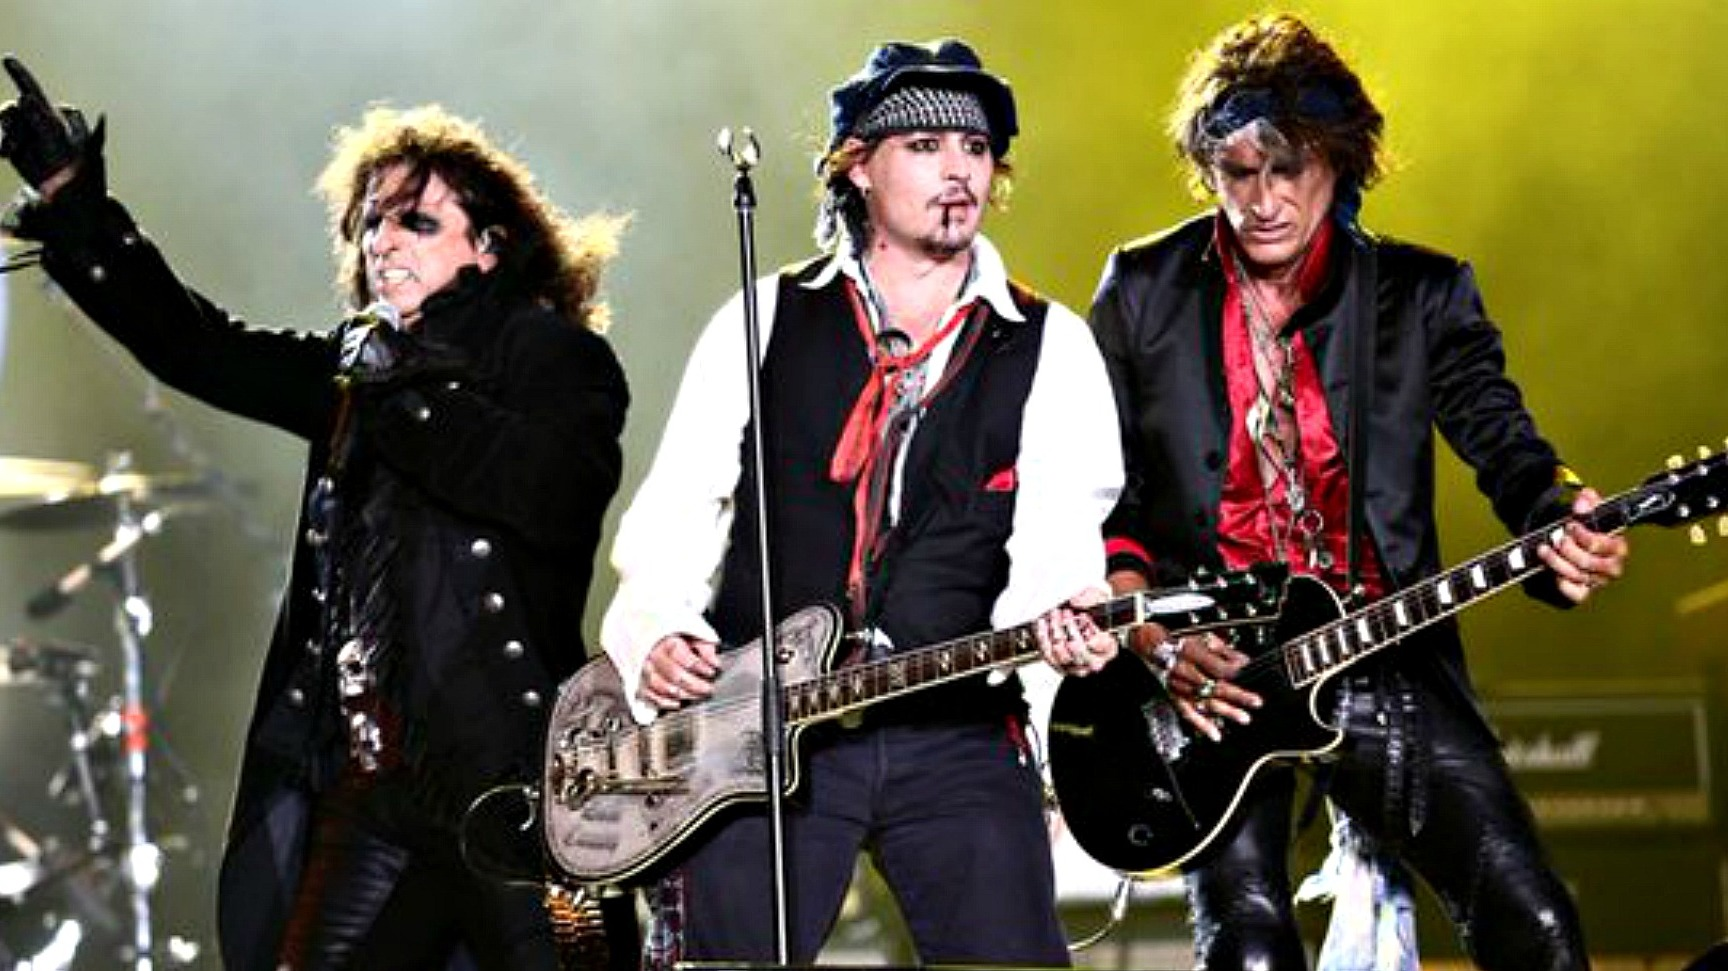 Johnny Depp And The Hollywood Vampires Tour Dates Runway